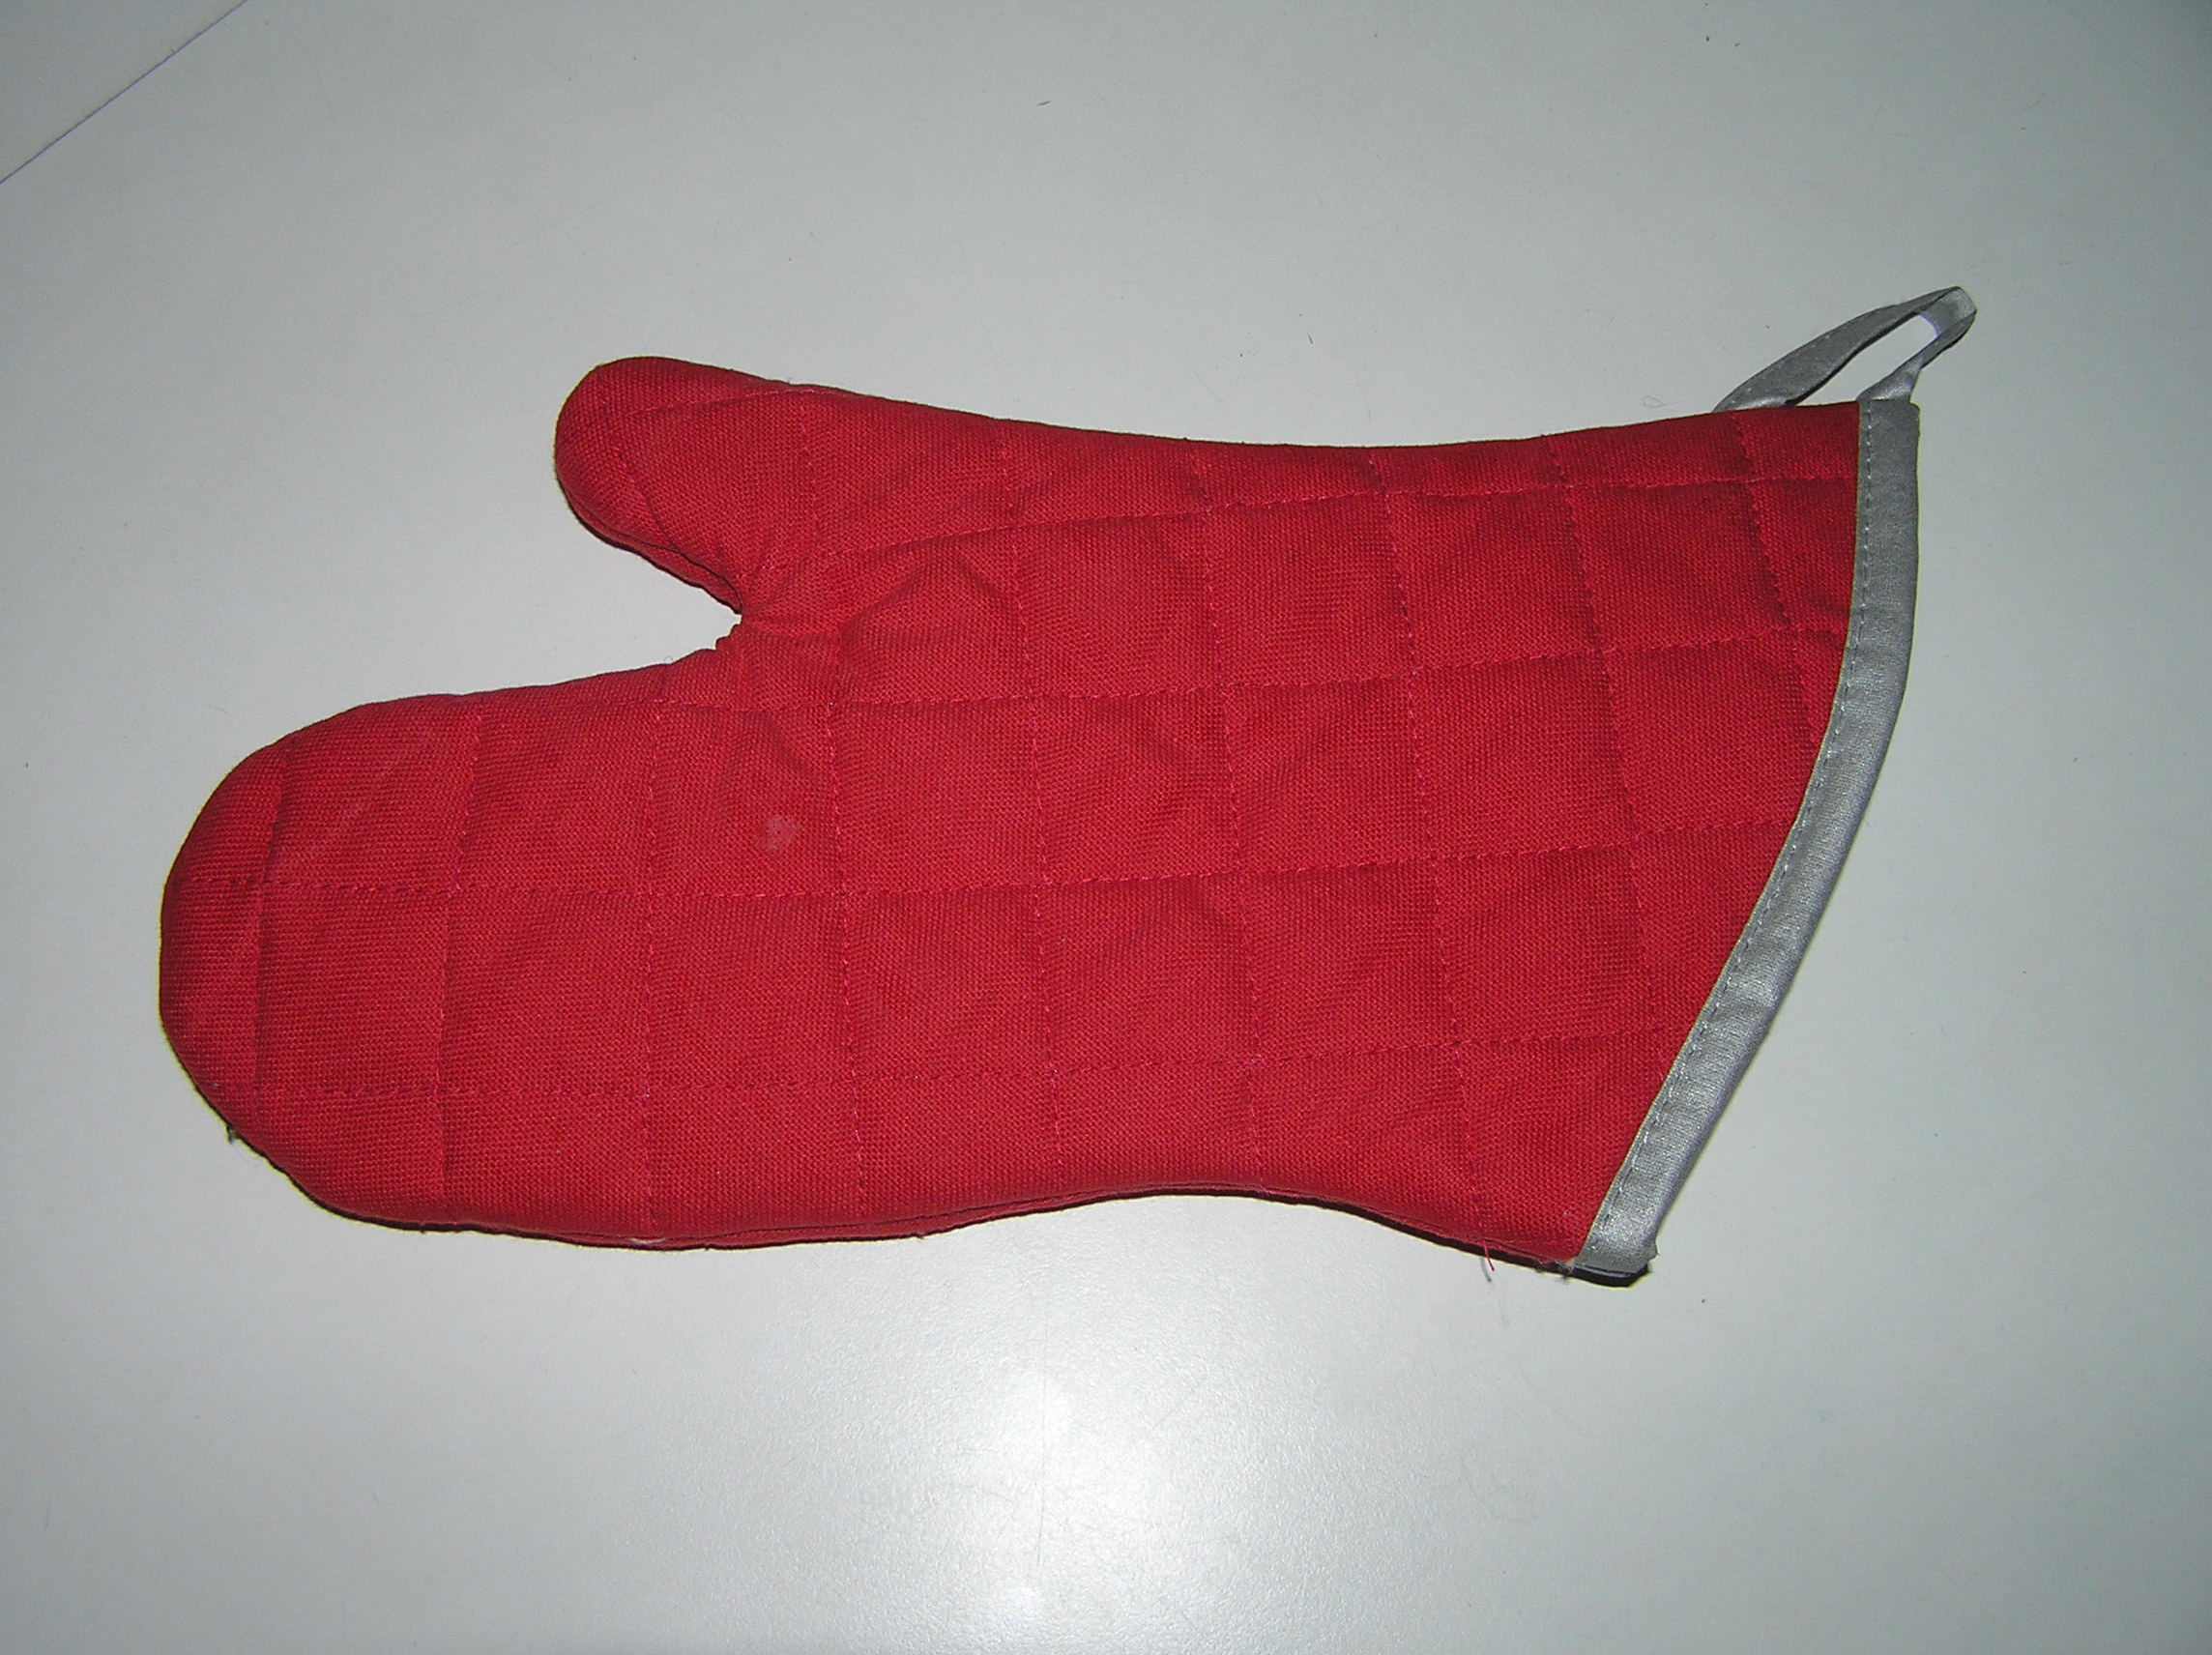 012a3726e71 Oven glove. From Wikipedia ...